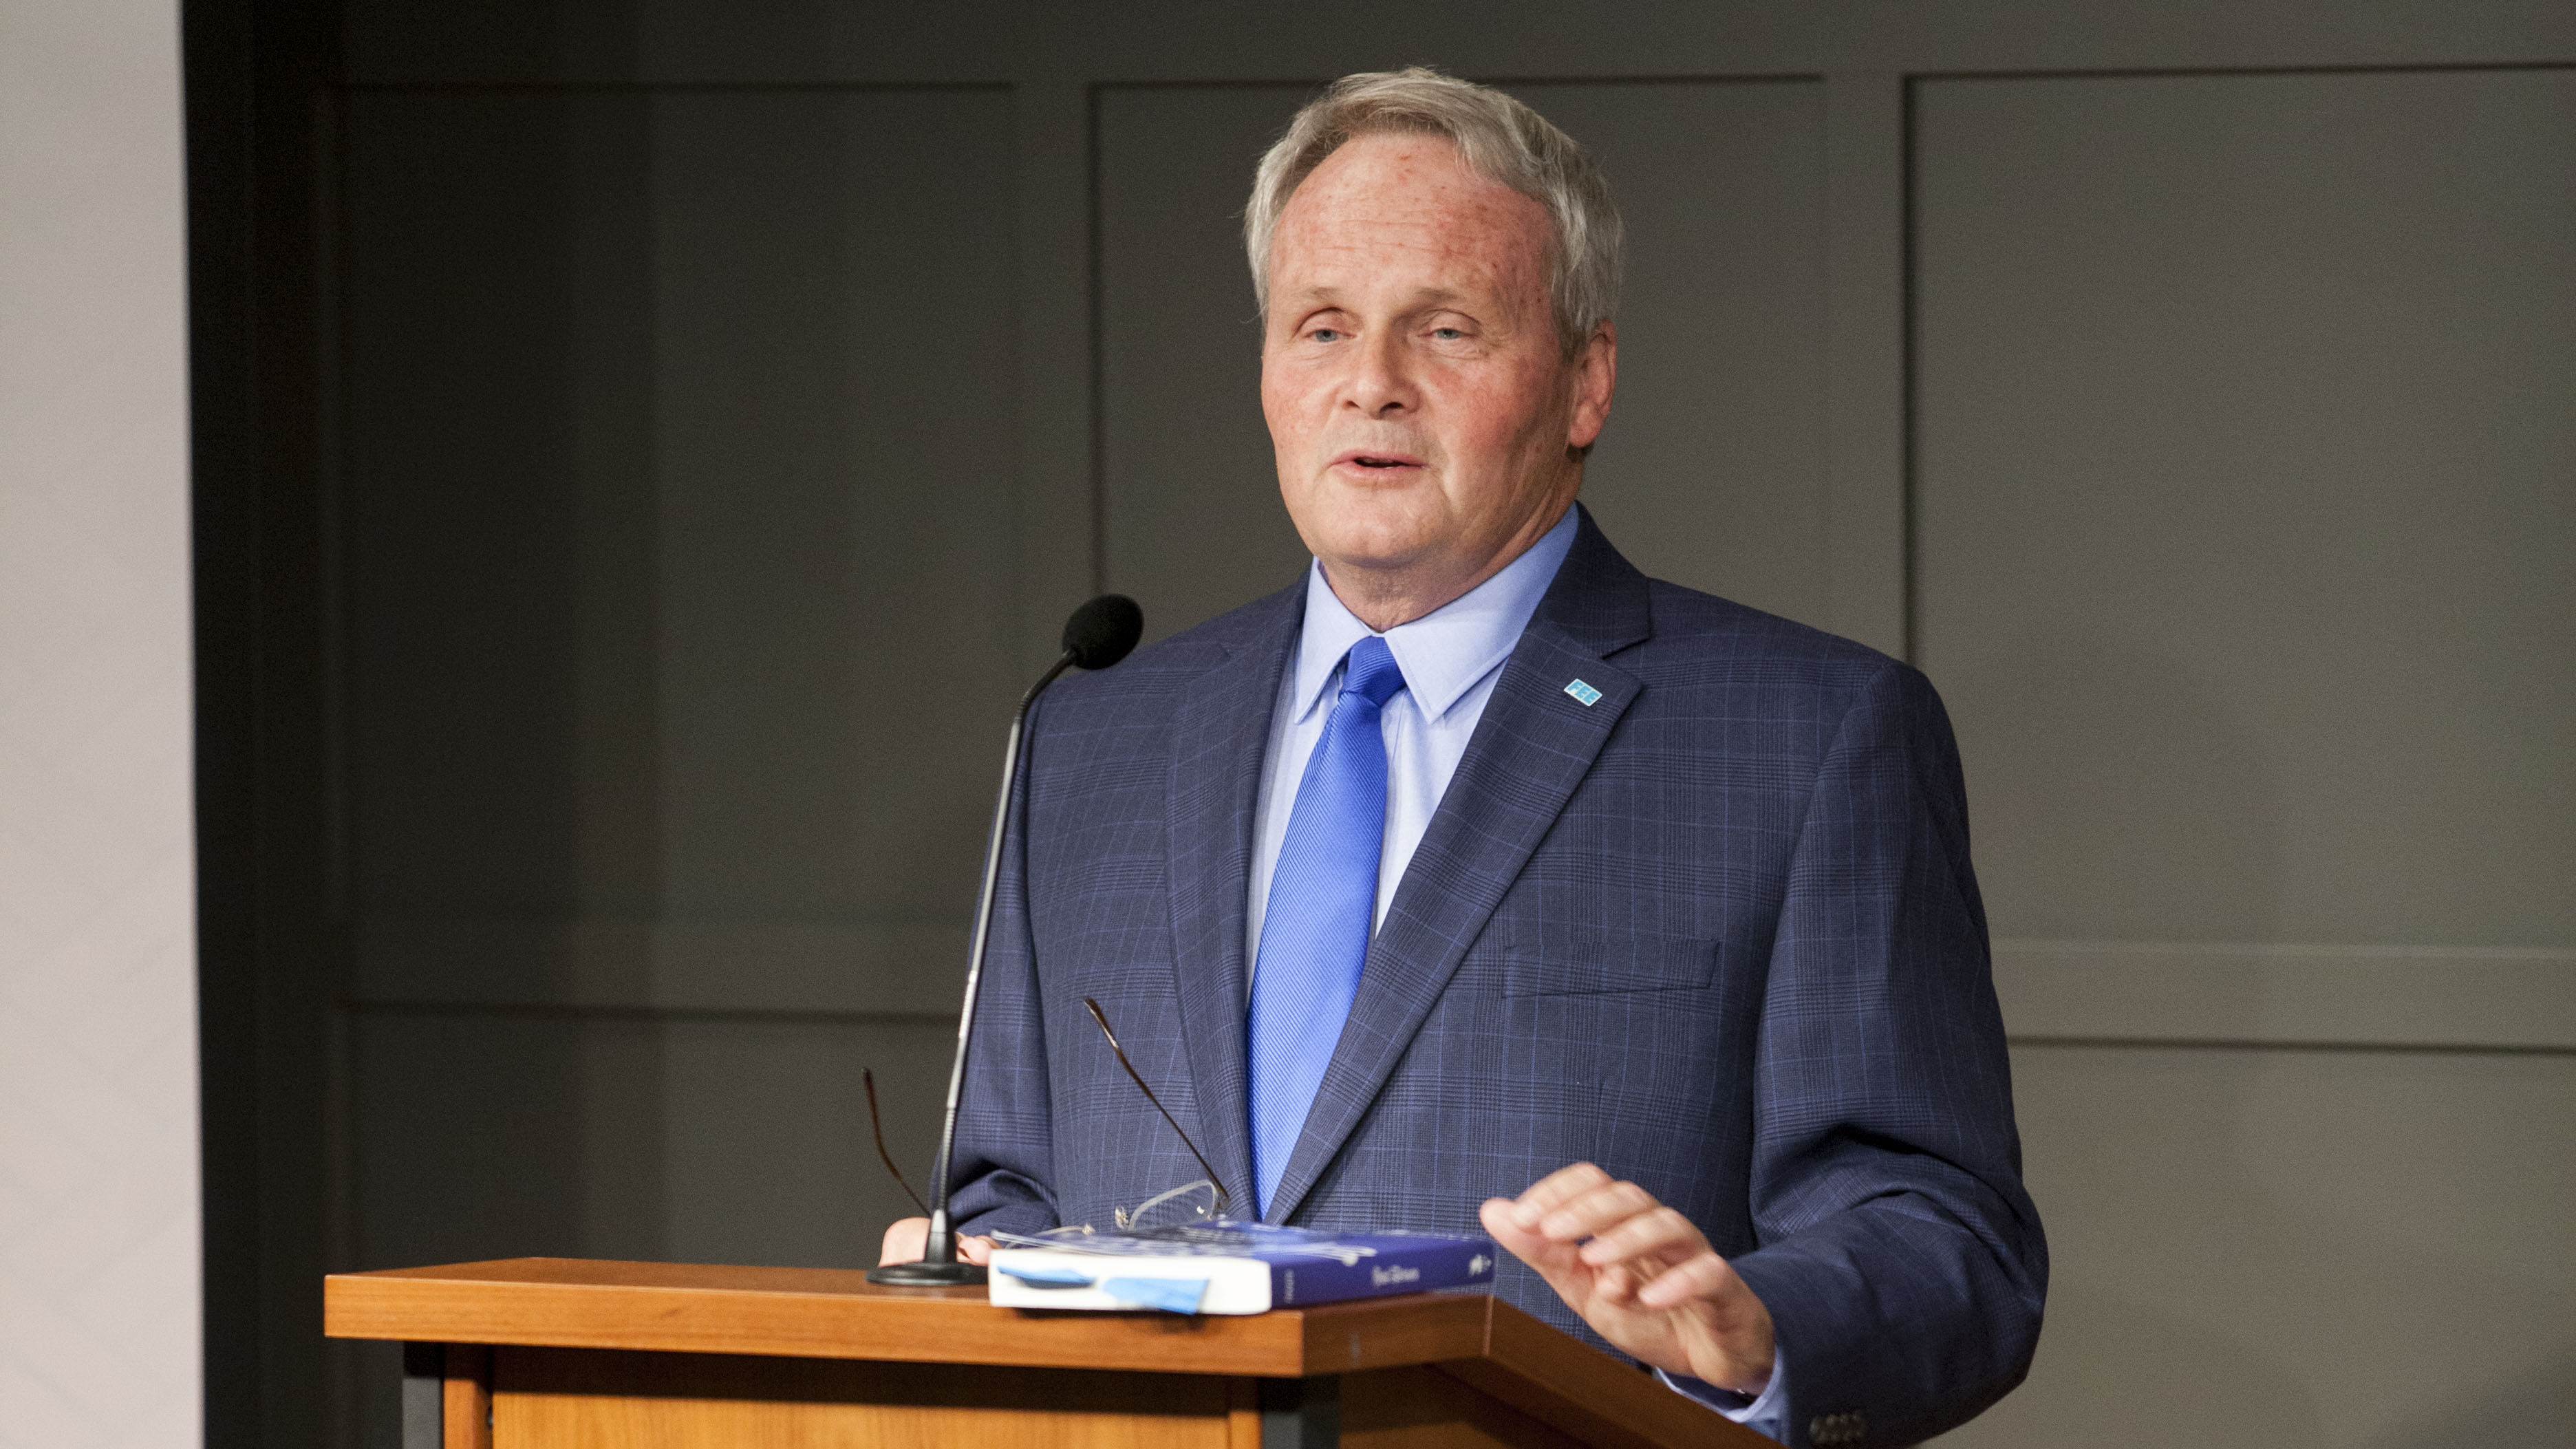 Lawrence Reed